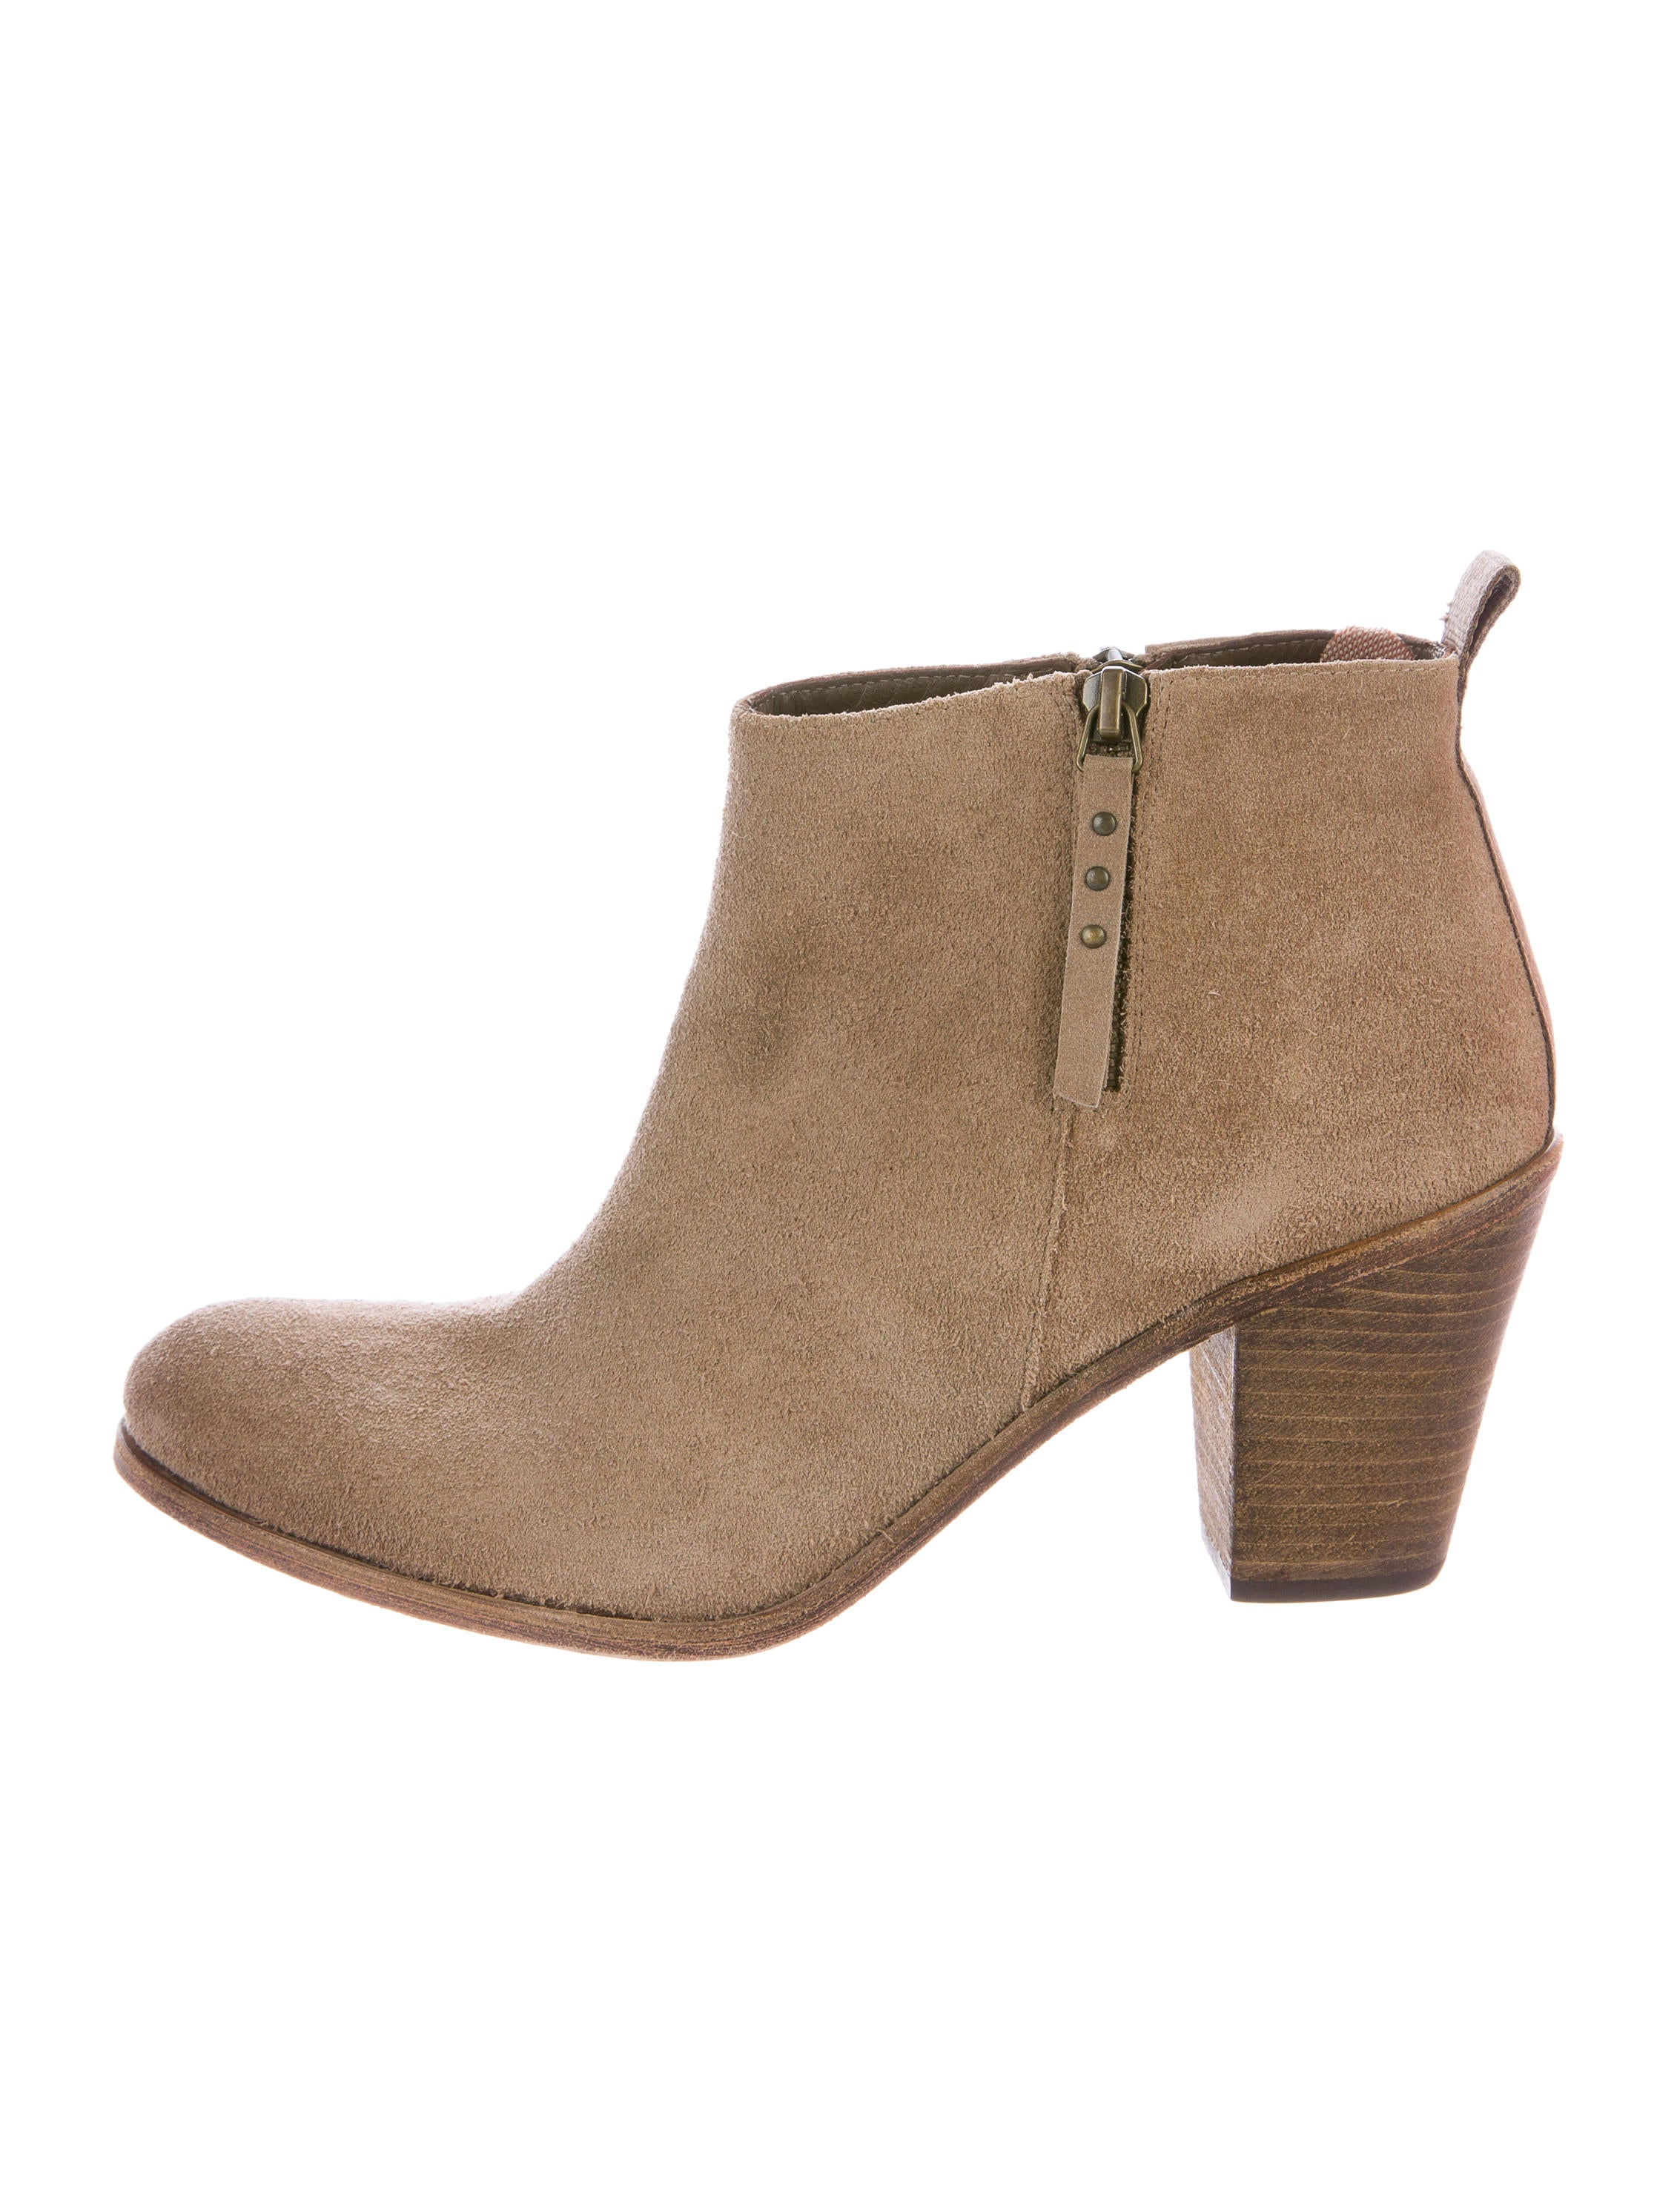 hoss intropia suede ankle boots shoes whoss20063 the